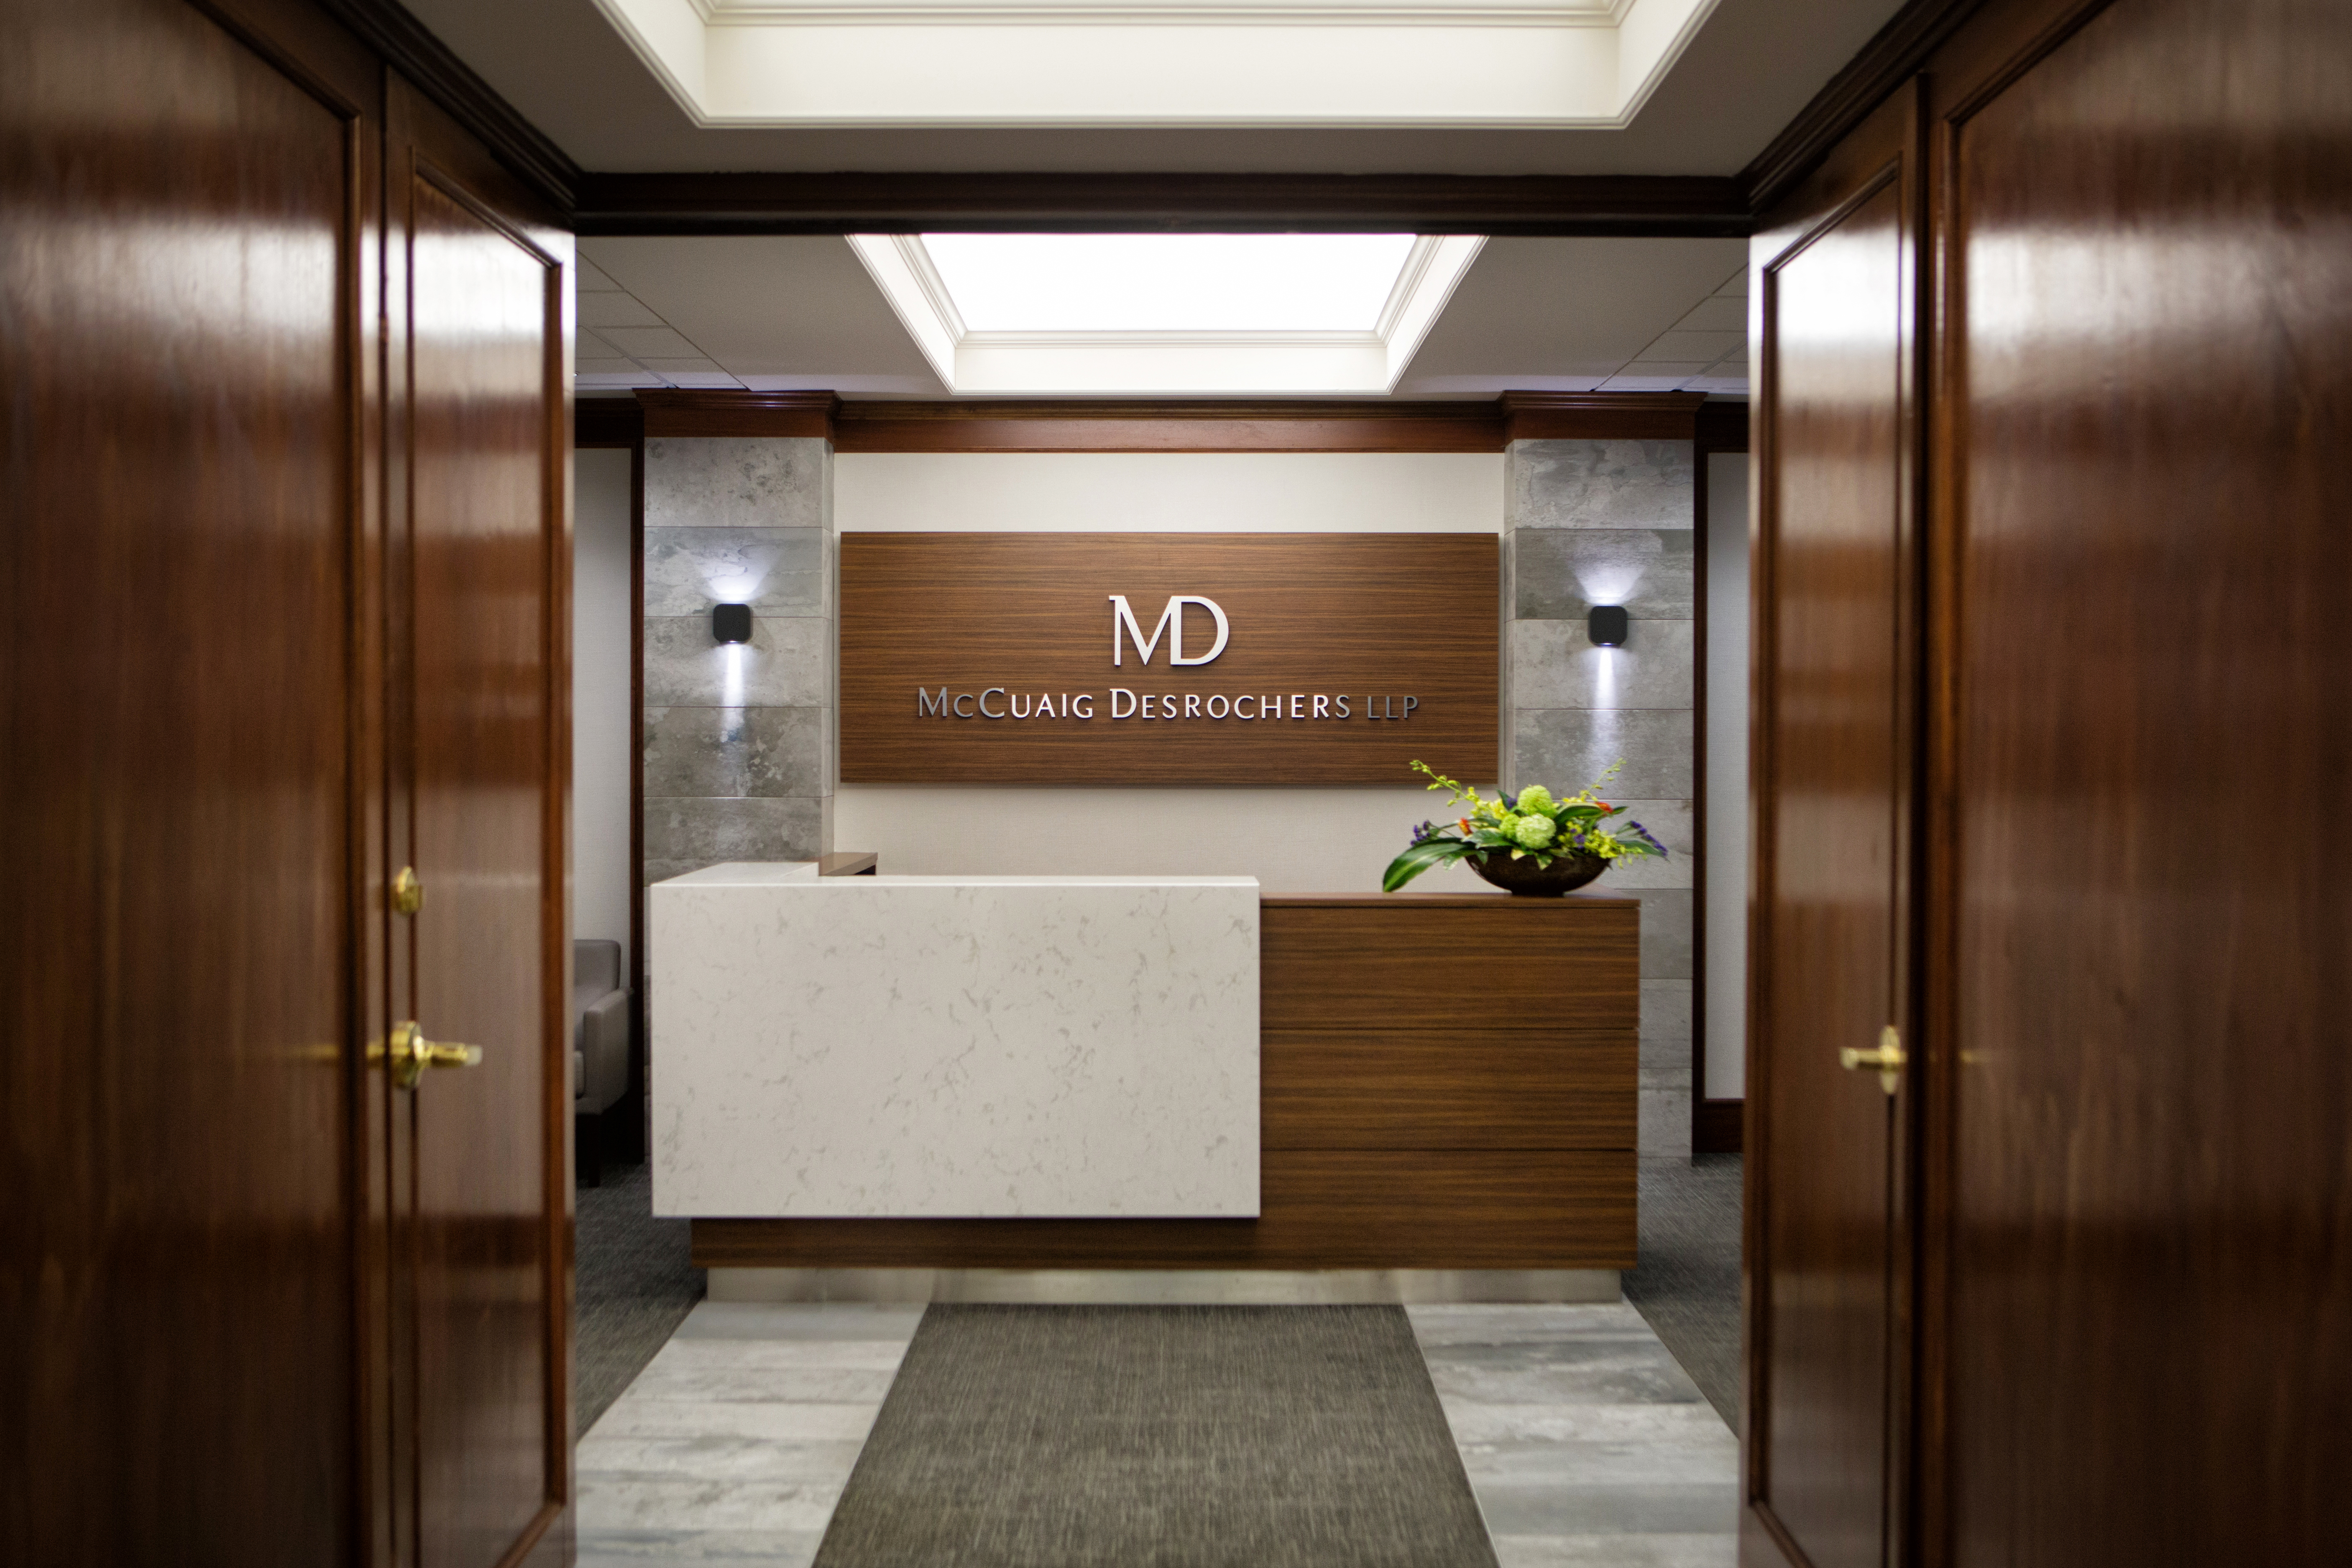 Reception desk of law firm with logo on wall